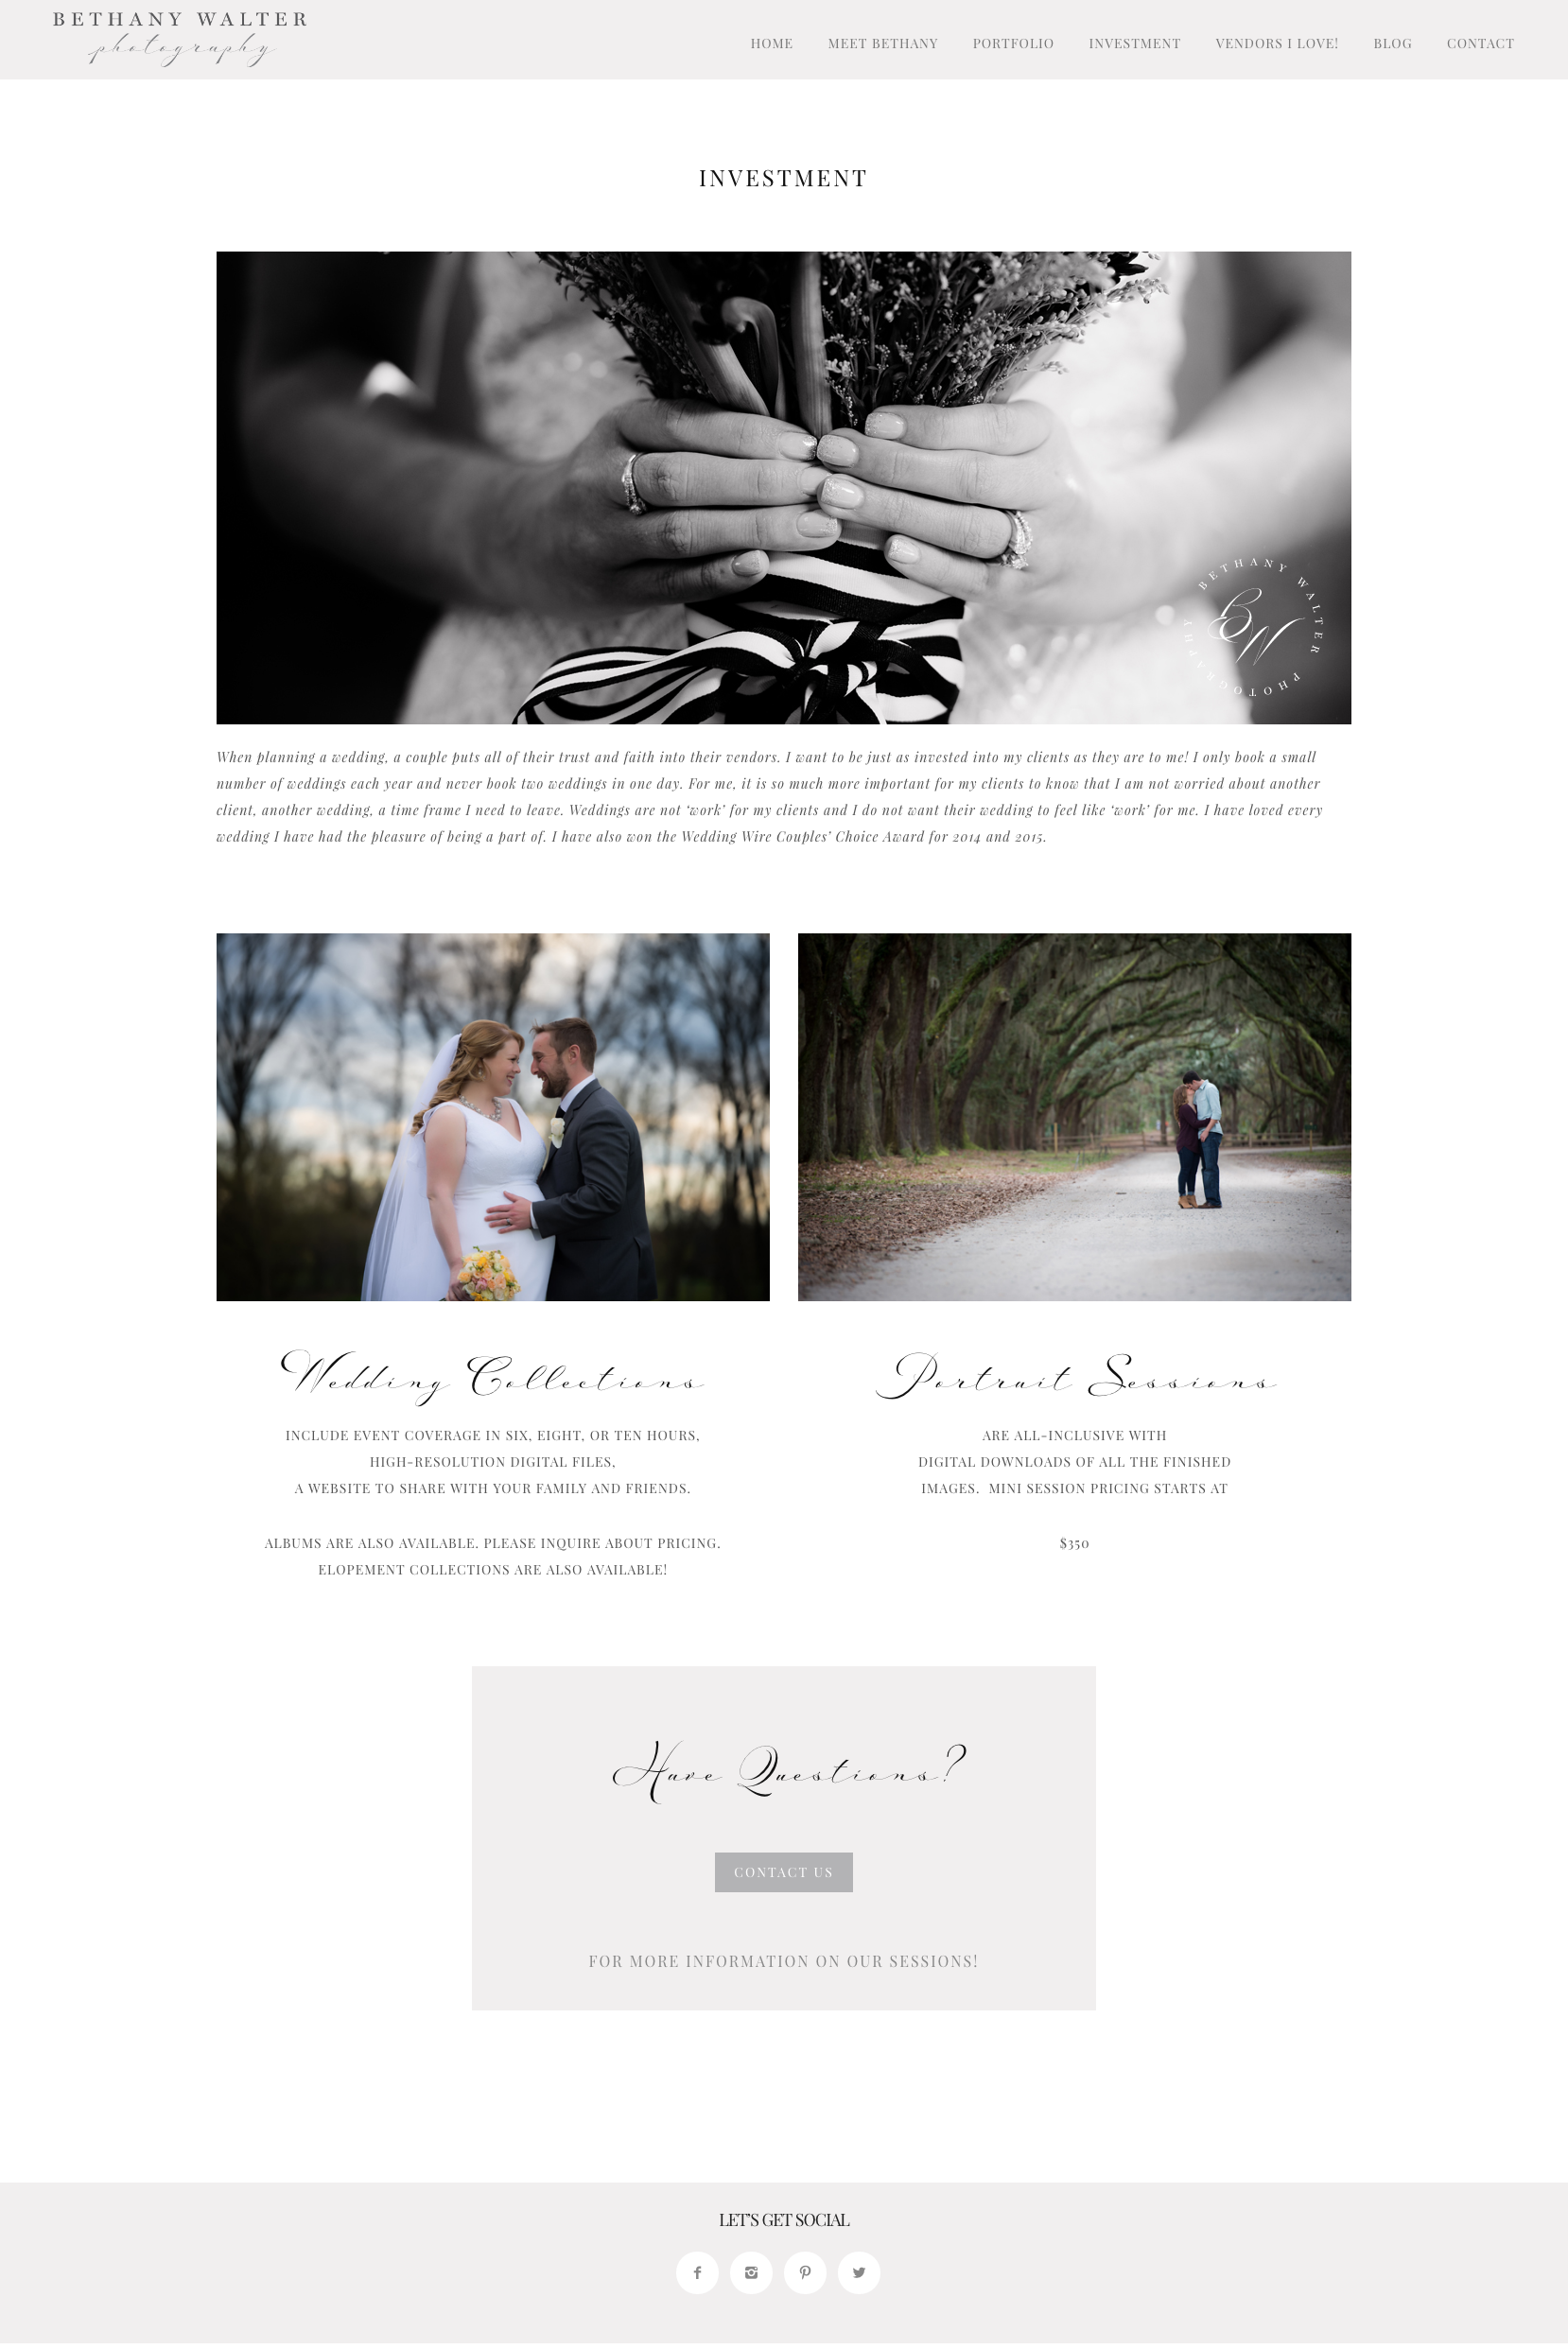 Investment page for Bethany Walter Photography, by Fancy Girl Design Studio